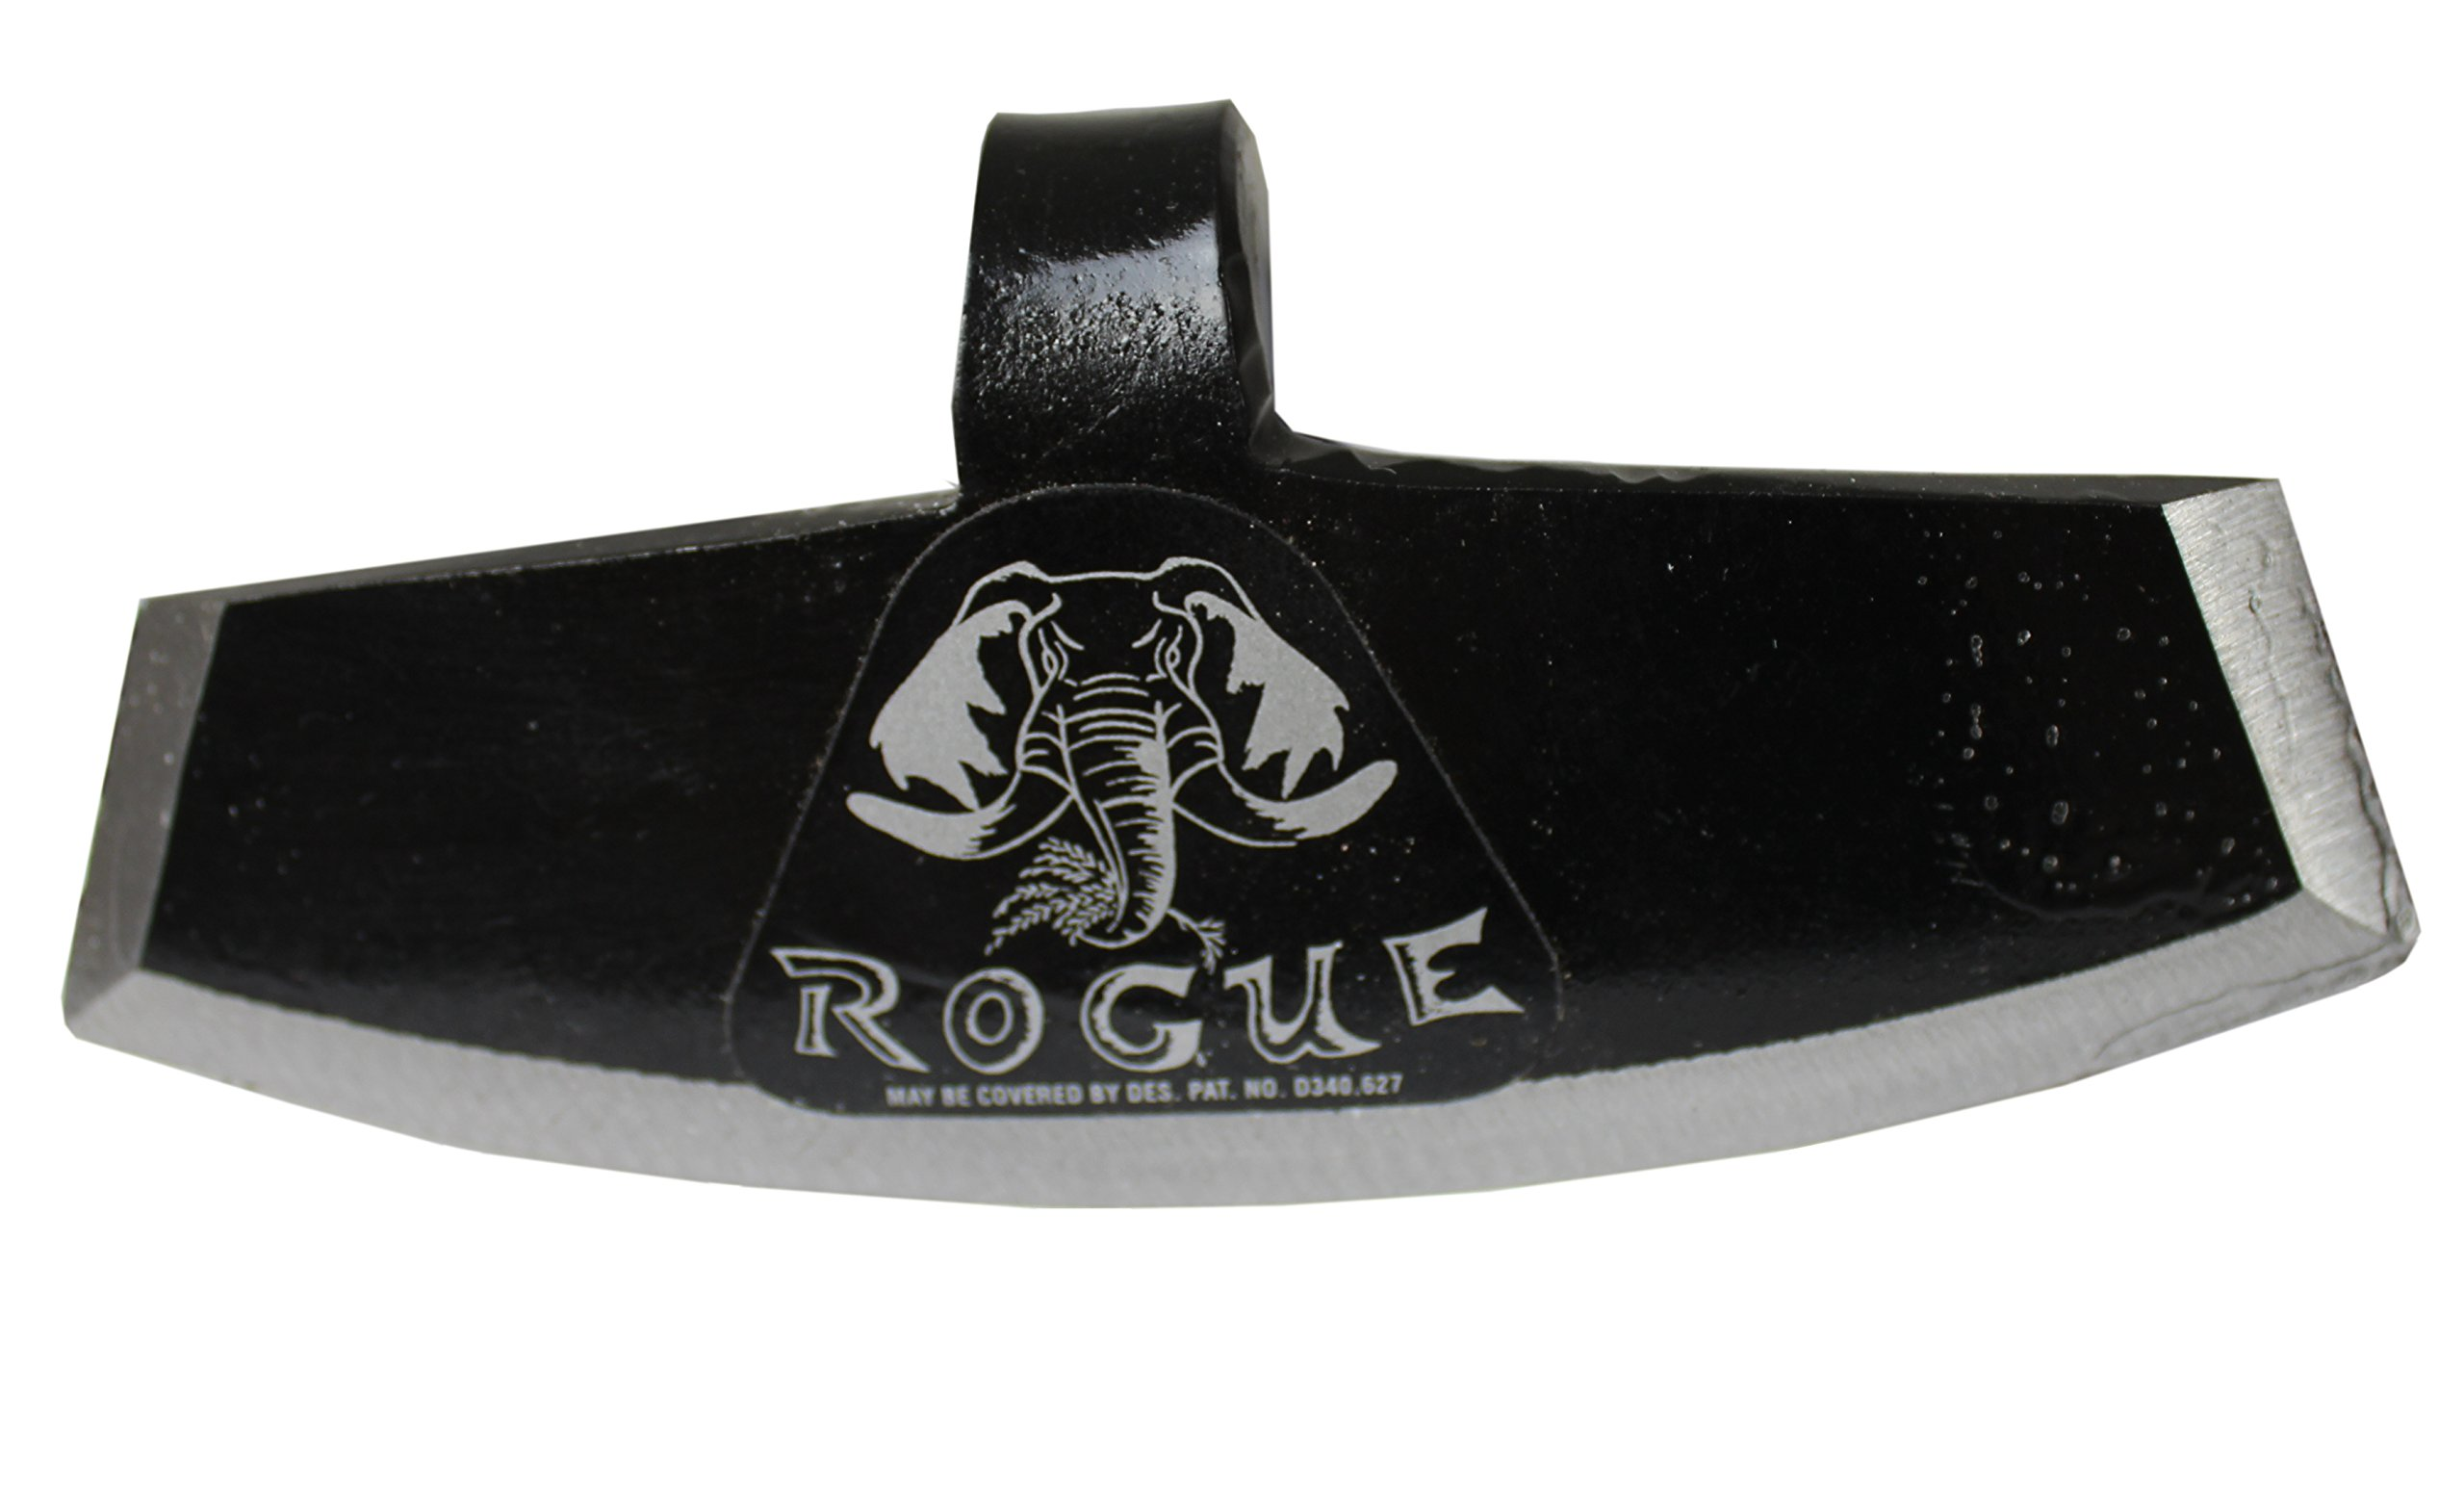 Rogue Garden Hoe 575G   Light-Weight but Tough Hoe   Made in USA   100% Lifetime Guarantee by Prohoe (Image #4)